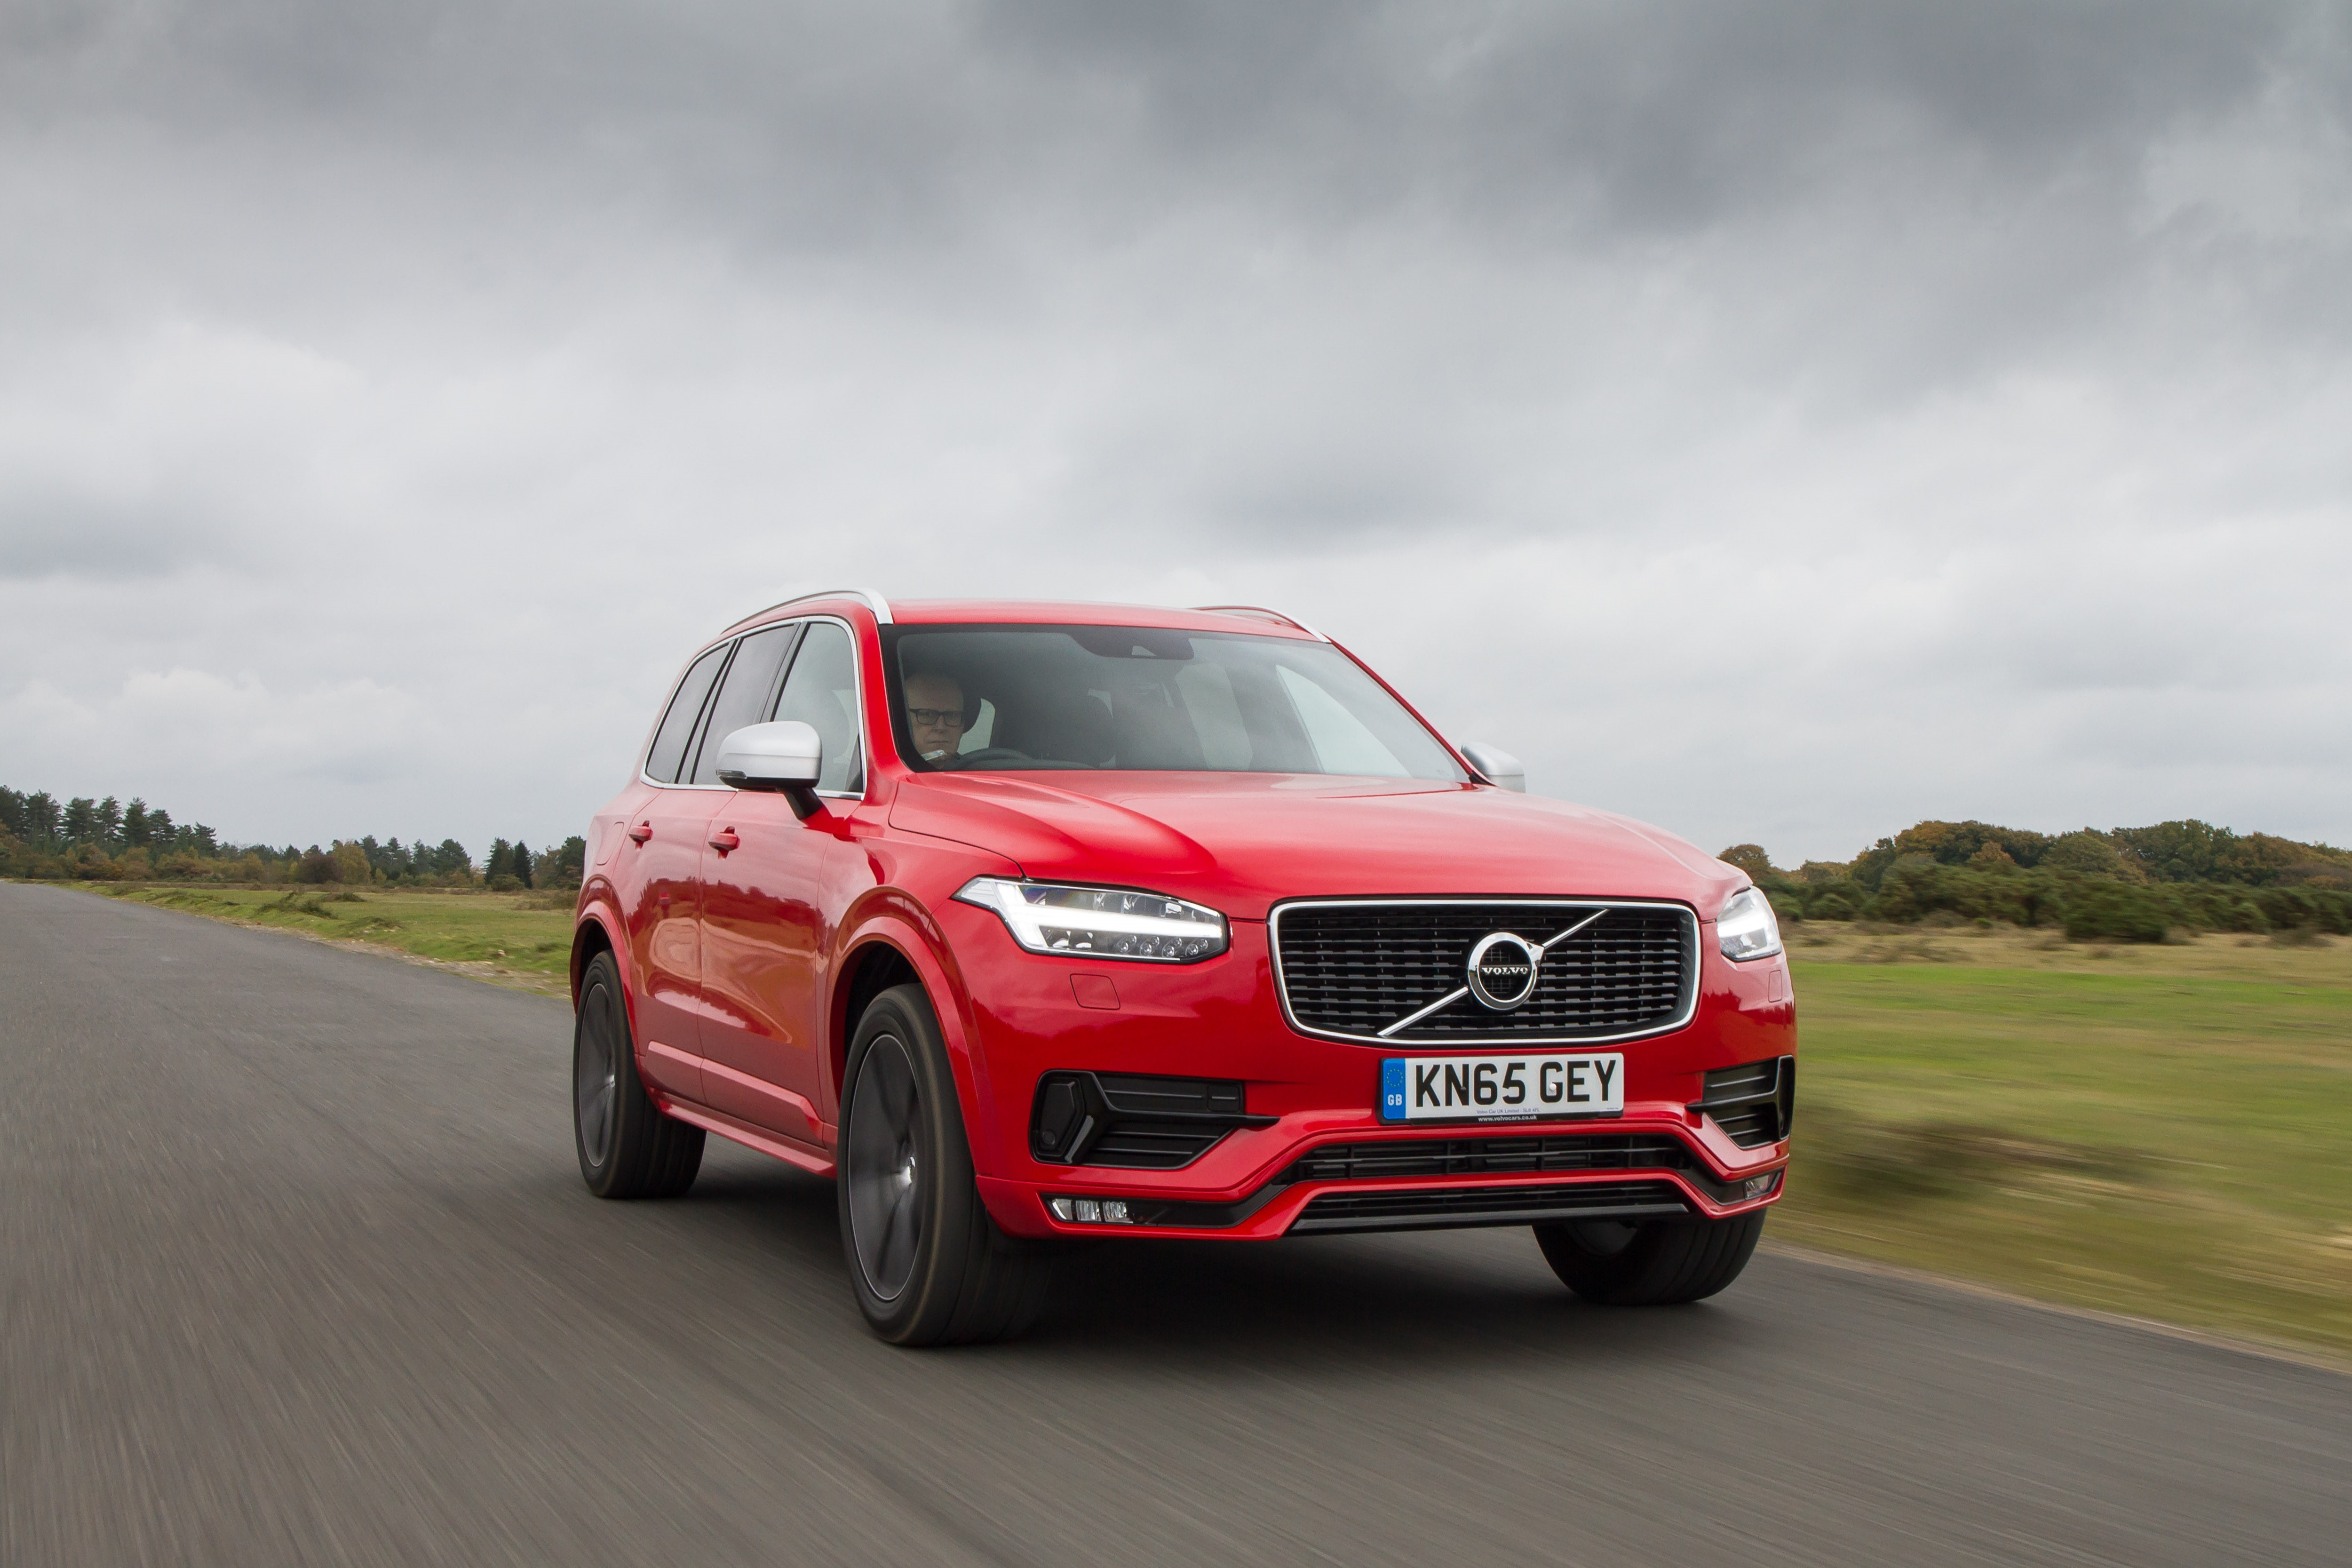 review r report volvo loading two long term images photos design suv